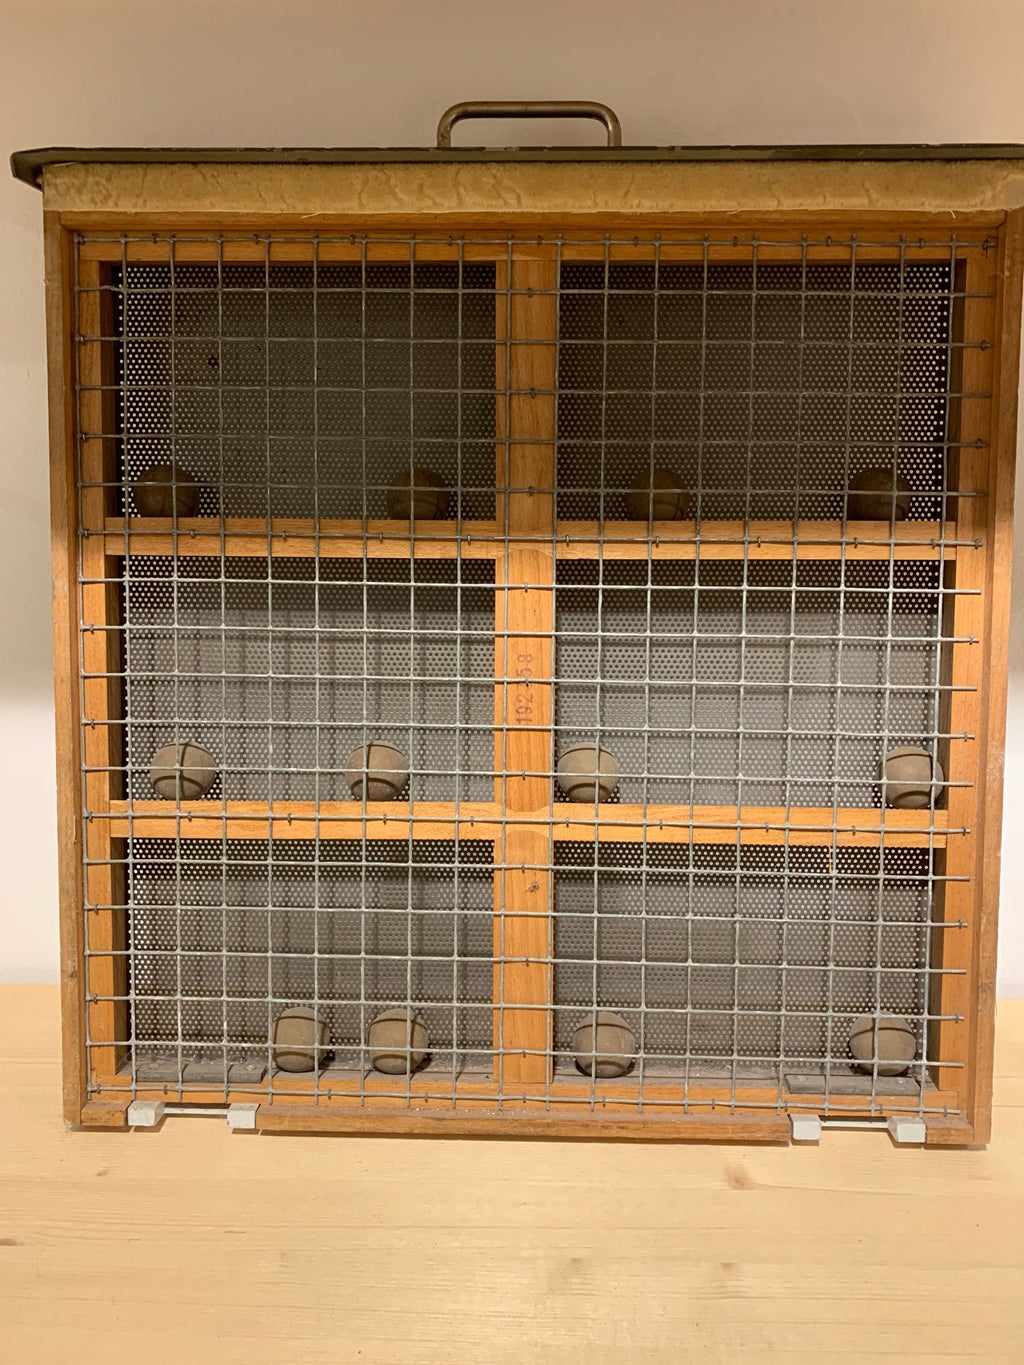 Metal cage decoration